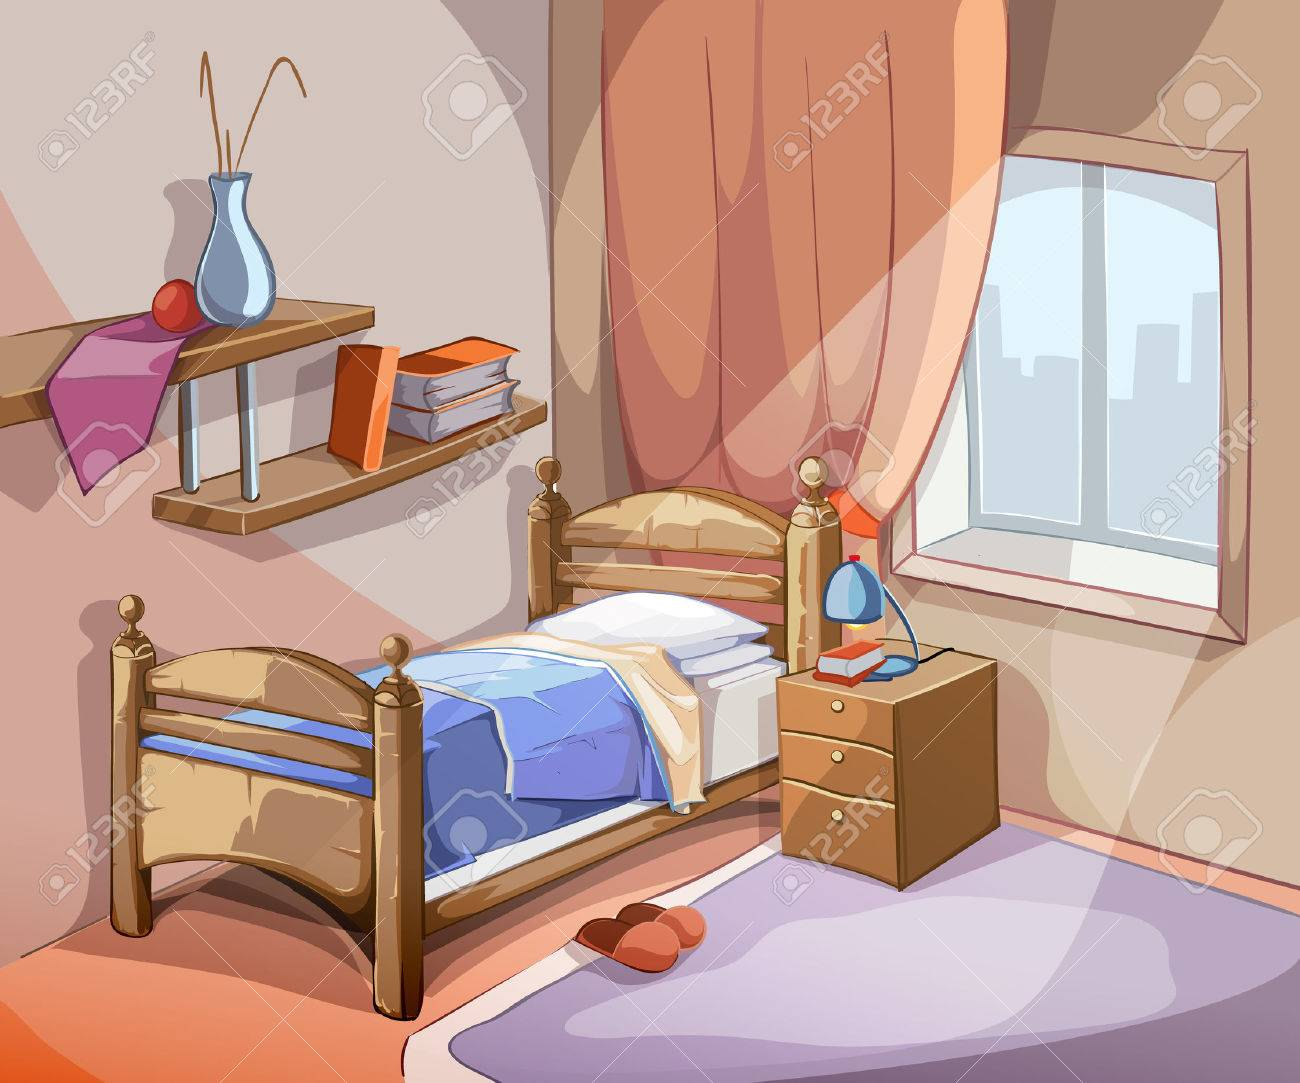 Bedroom Interior In Cartoon Style Furniture Design Bed Indoor Royalty Free Cliparts Vectors And Stock Illustration Image 50636376